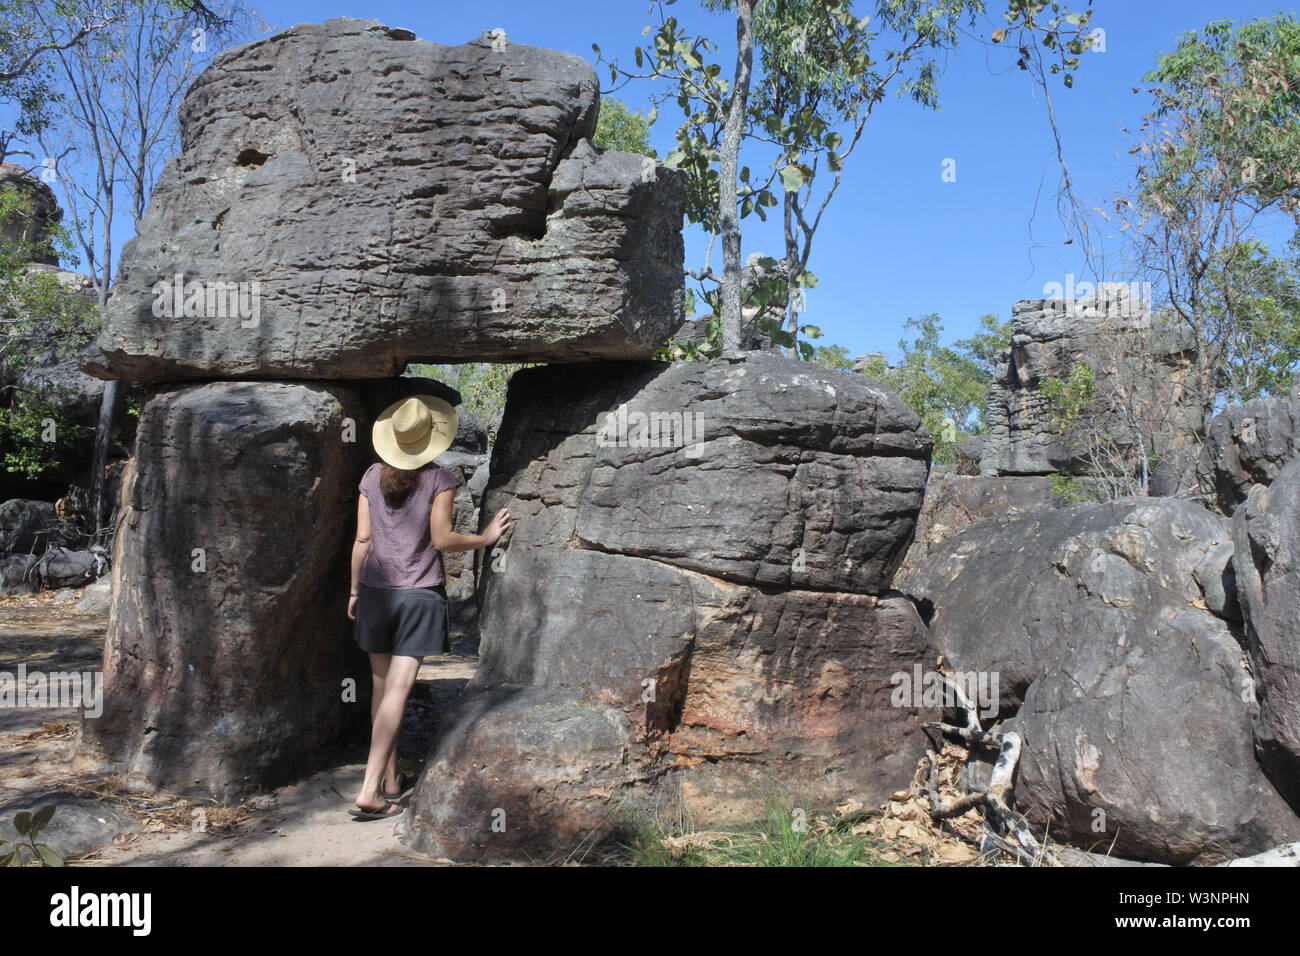 Young Australian adult woman tourist visit in the lost city at Litchfield National Park Northern Territory Australia - Stock Image